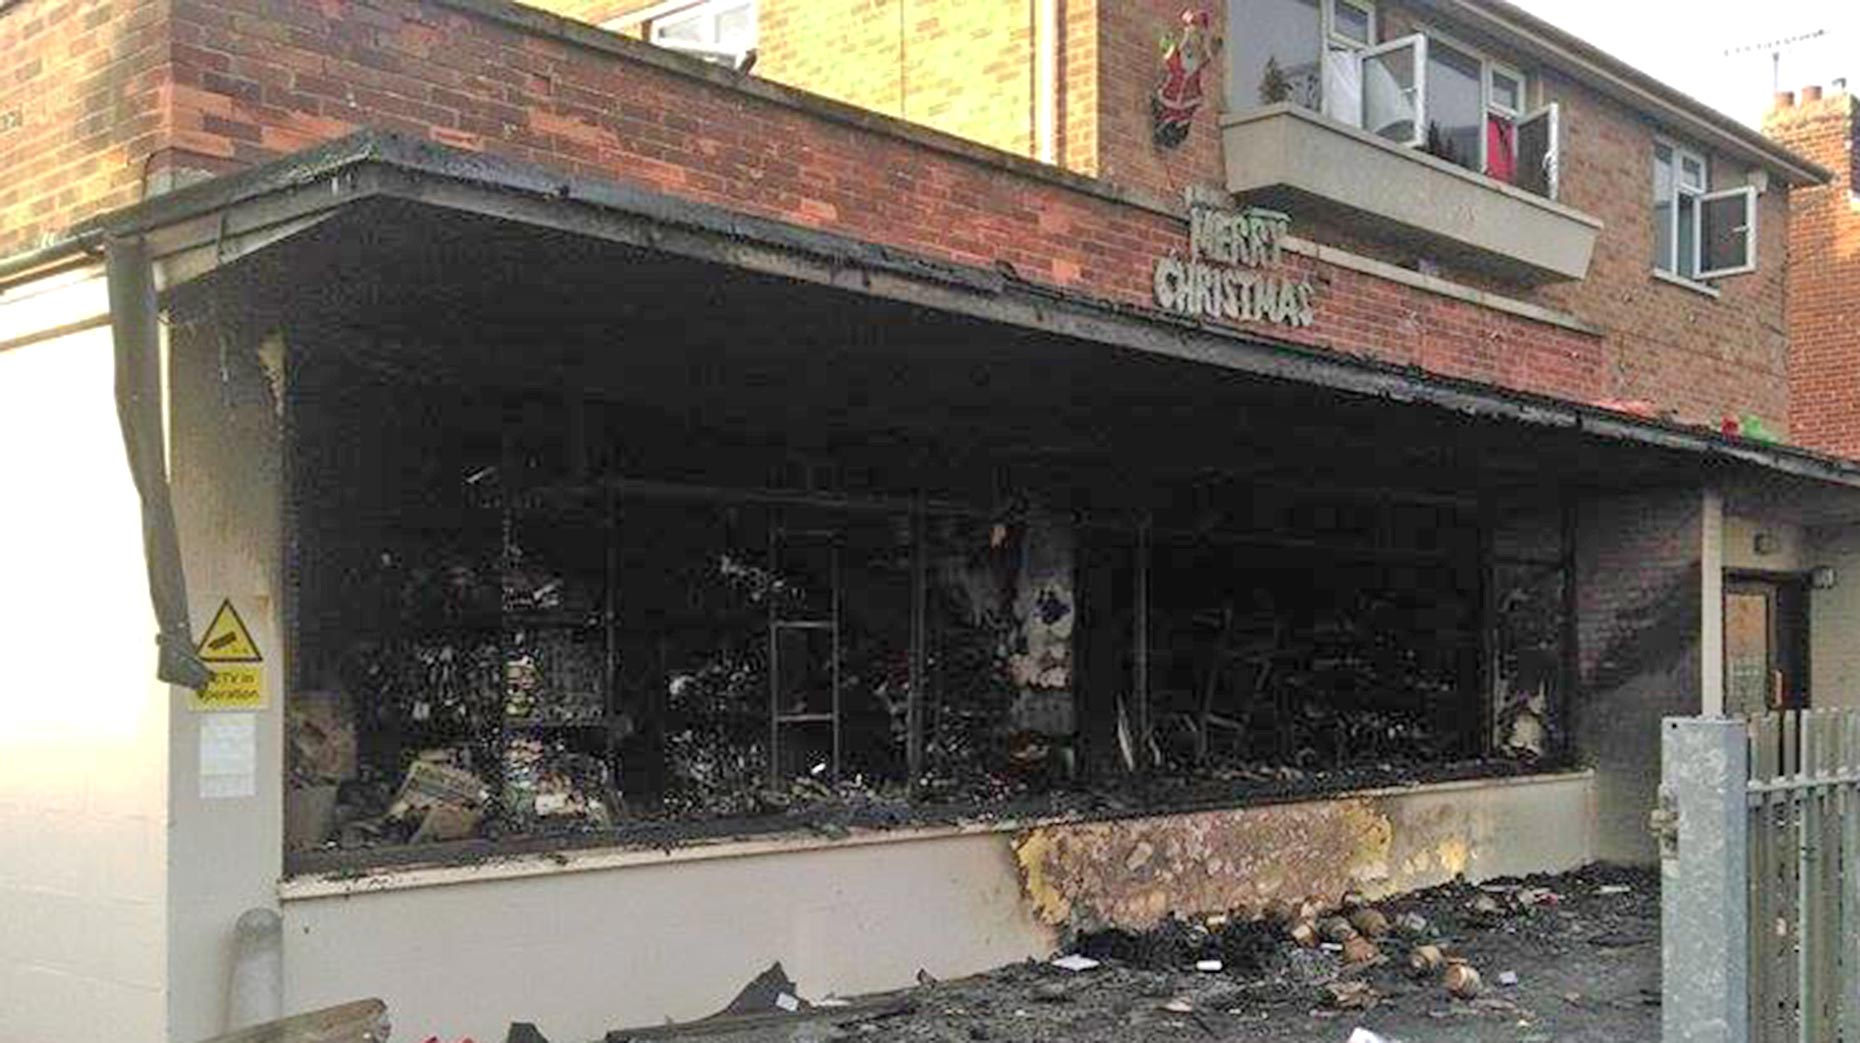 The scene on the morning of Tuesday, December 22 after the fire at the magic shop on De Wint Avenue. Photo: Stefan Pidluznyj